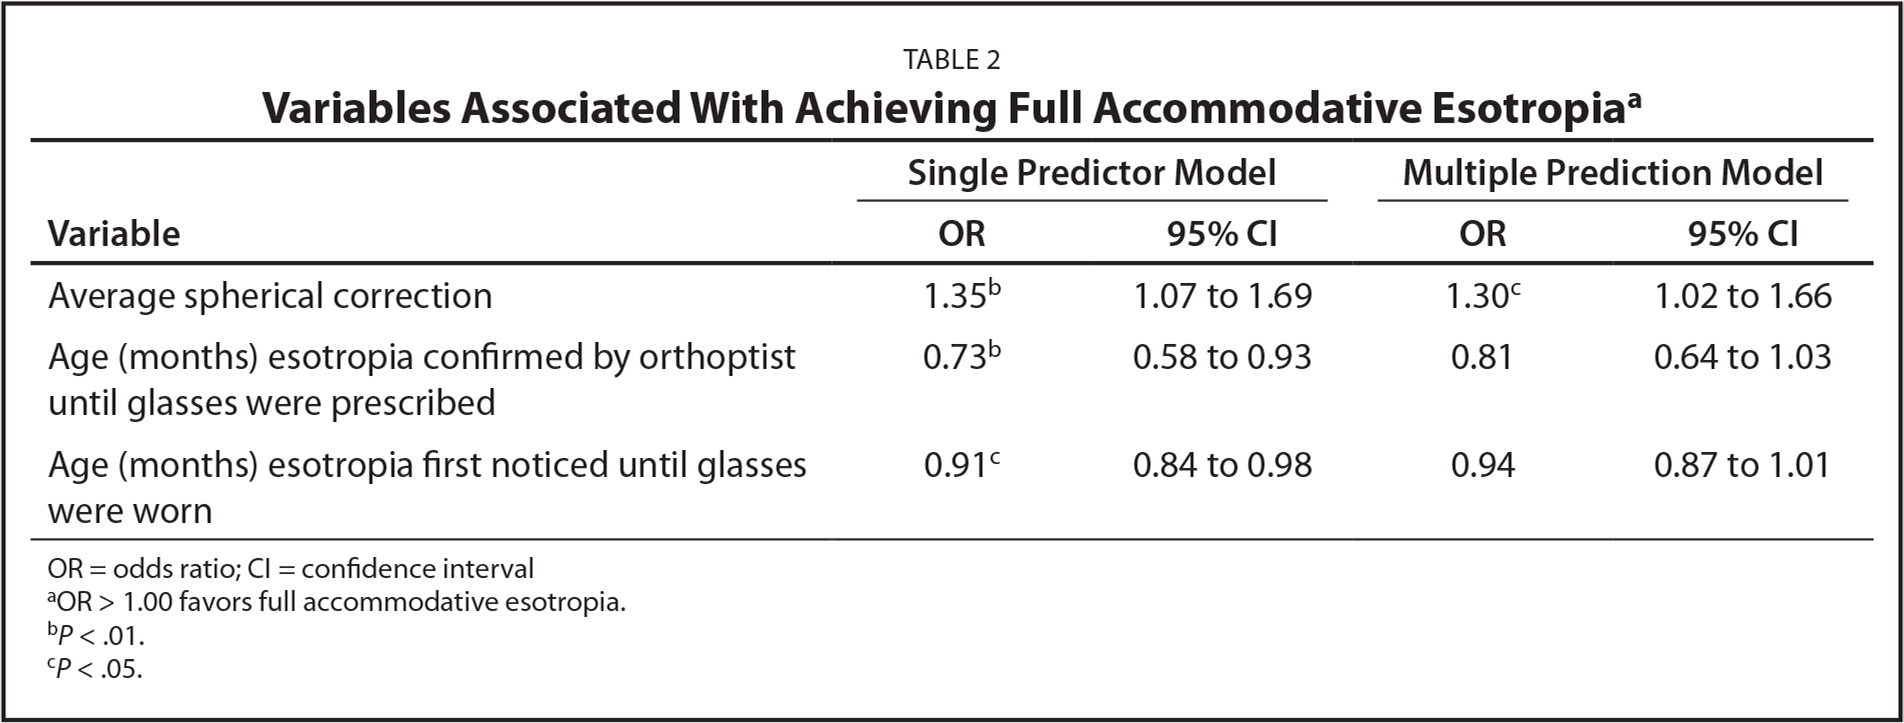 Variables Associated With Achieving Full Accommodative Esotropiaa